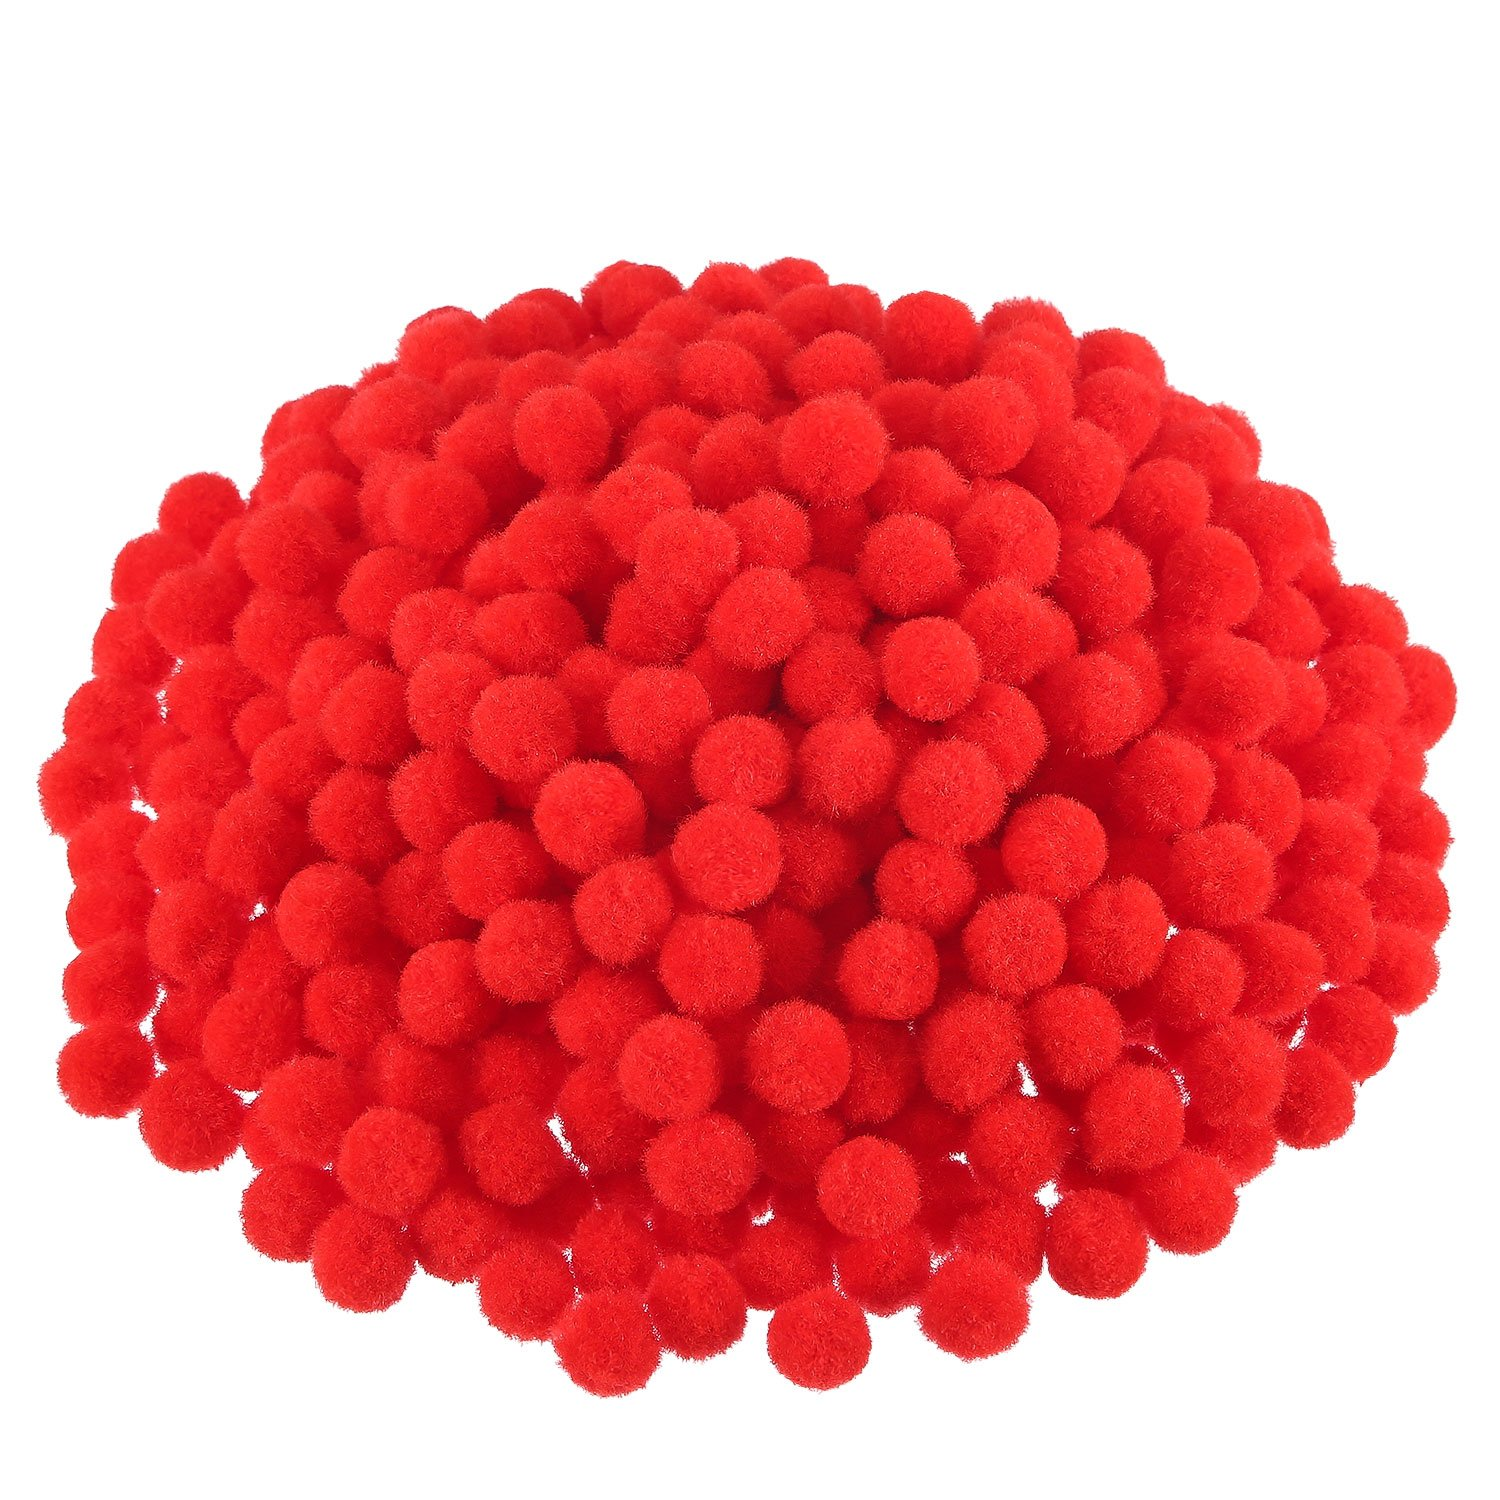 Blulu Pompoms for Craft Making and Hobby Supplies, 500 Pieces, 1.2 cm/ 0.5 Inch (Red)